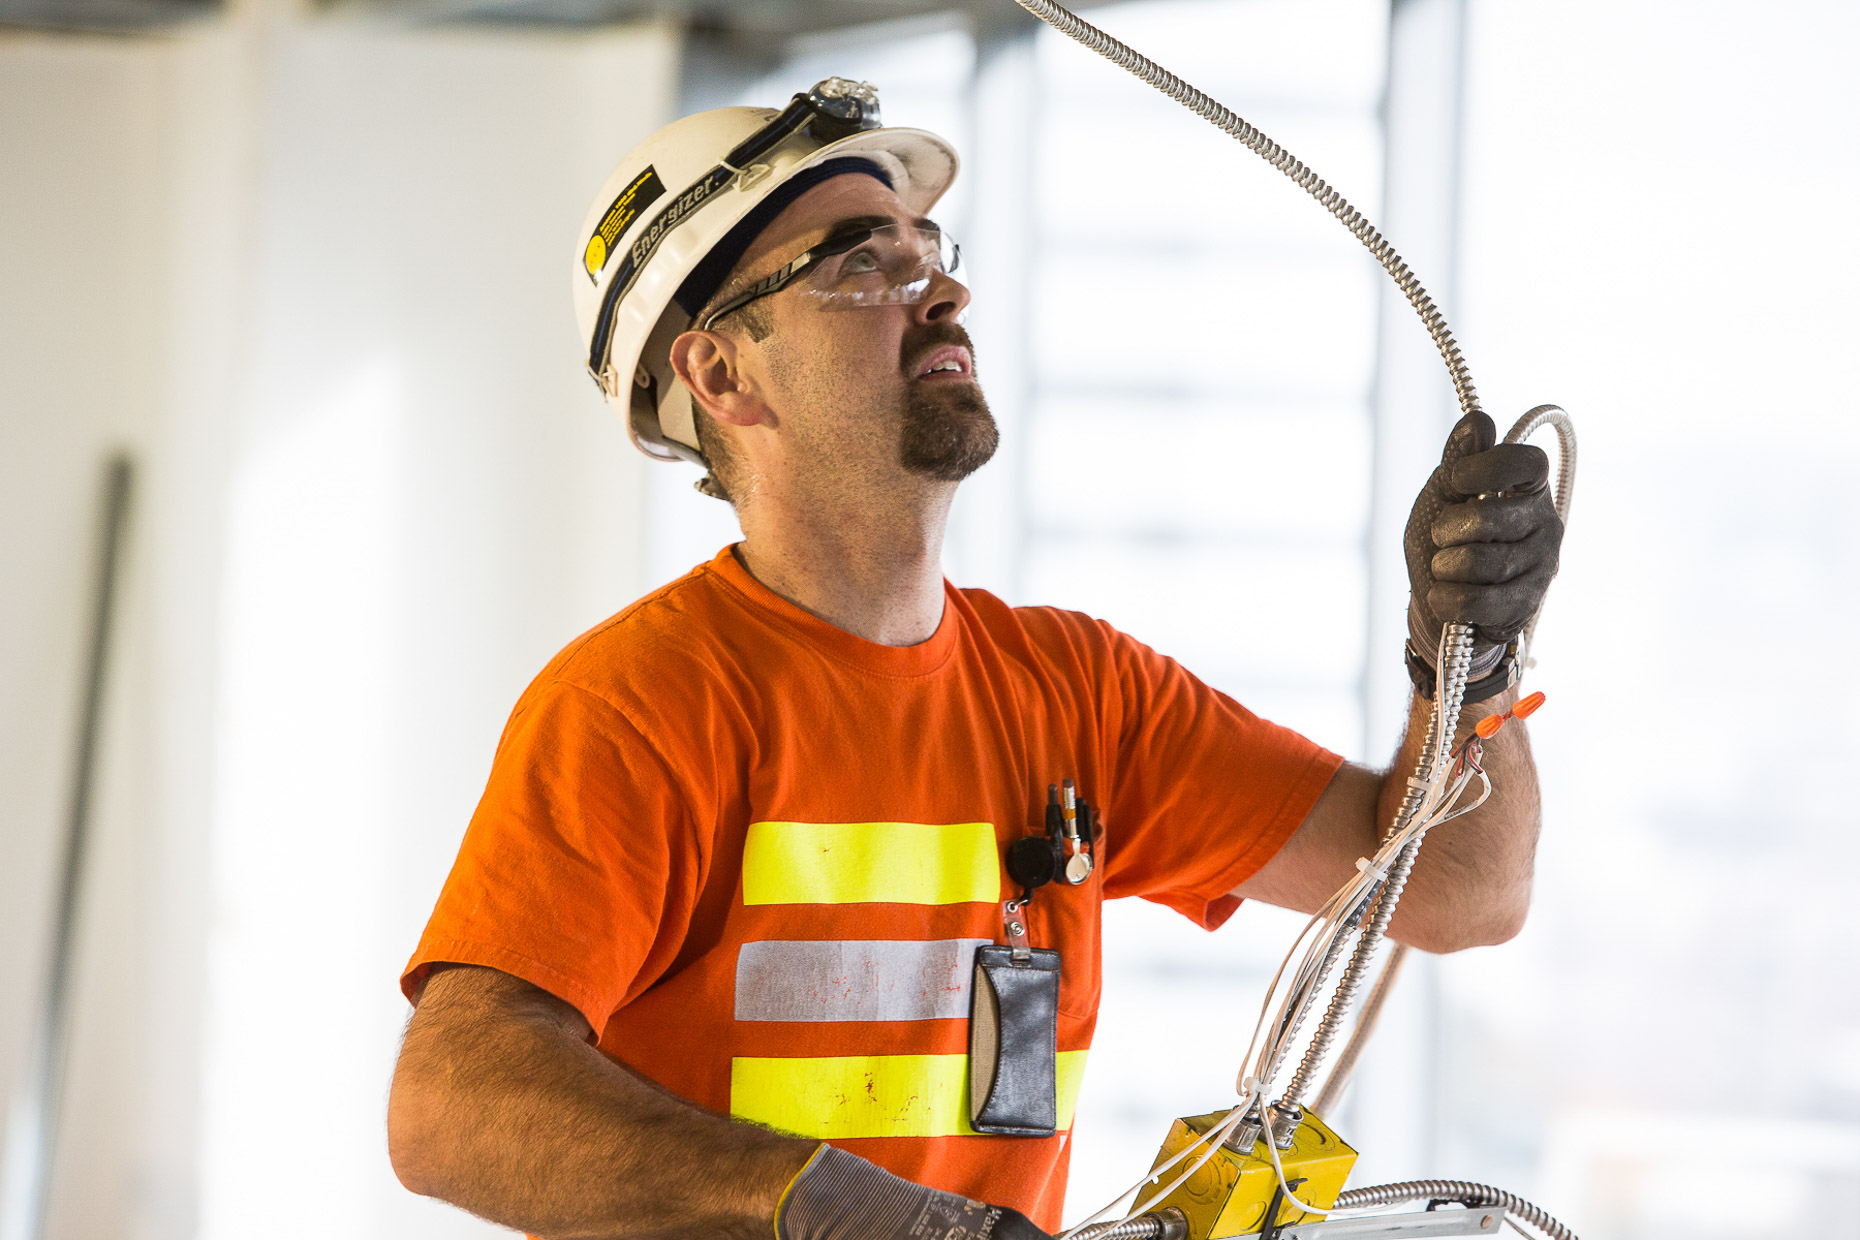 Artful Industry Photography in Seattle  : People At Work : Industrial Construction Companies| : EPC : General Contractors : Seattle Industrial Photographer : Seattle-Kirkland-Everett-Bellevue : AEC : : Engineering Procurement Construction